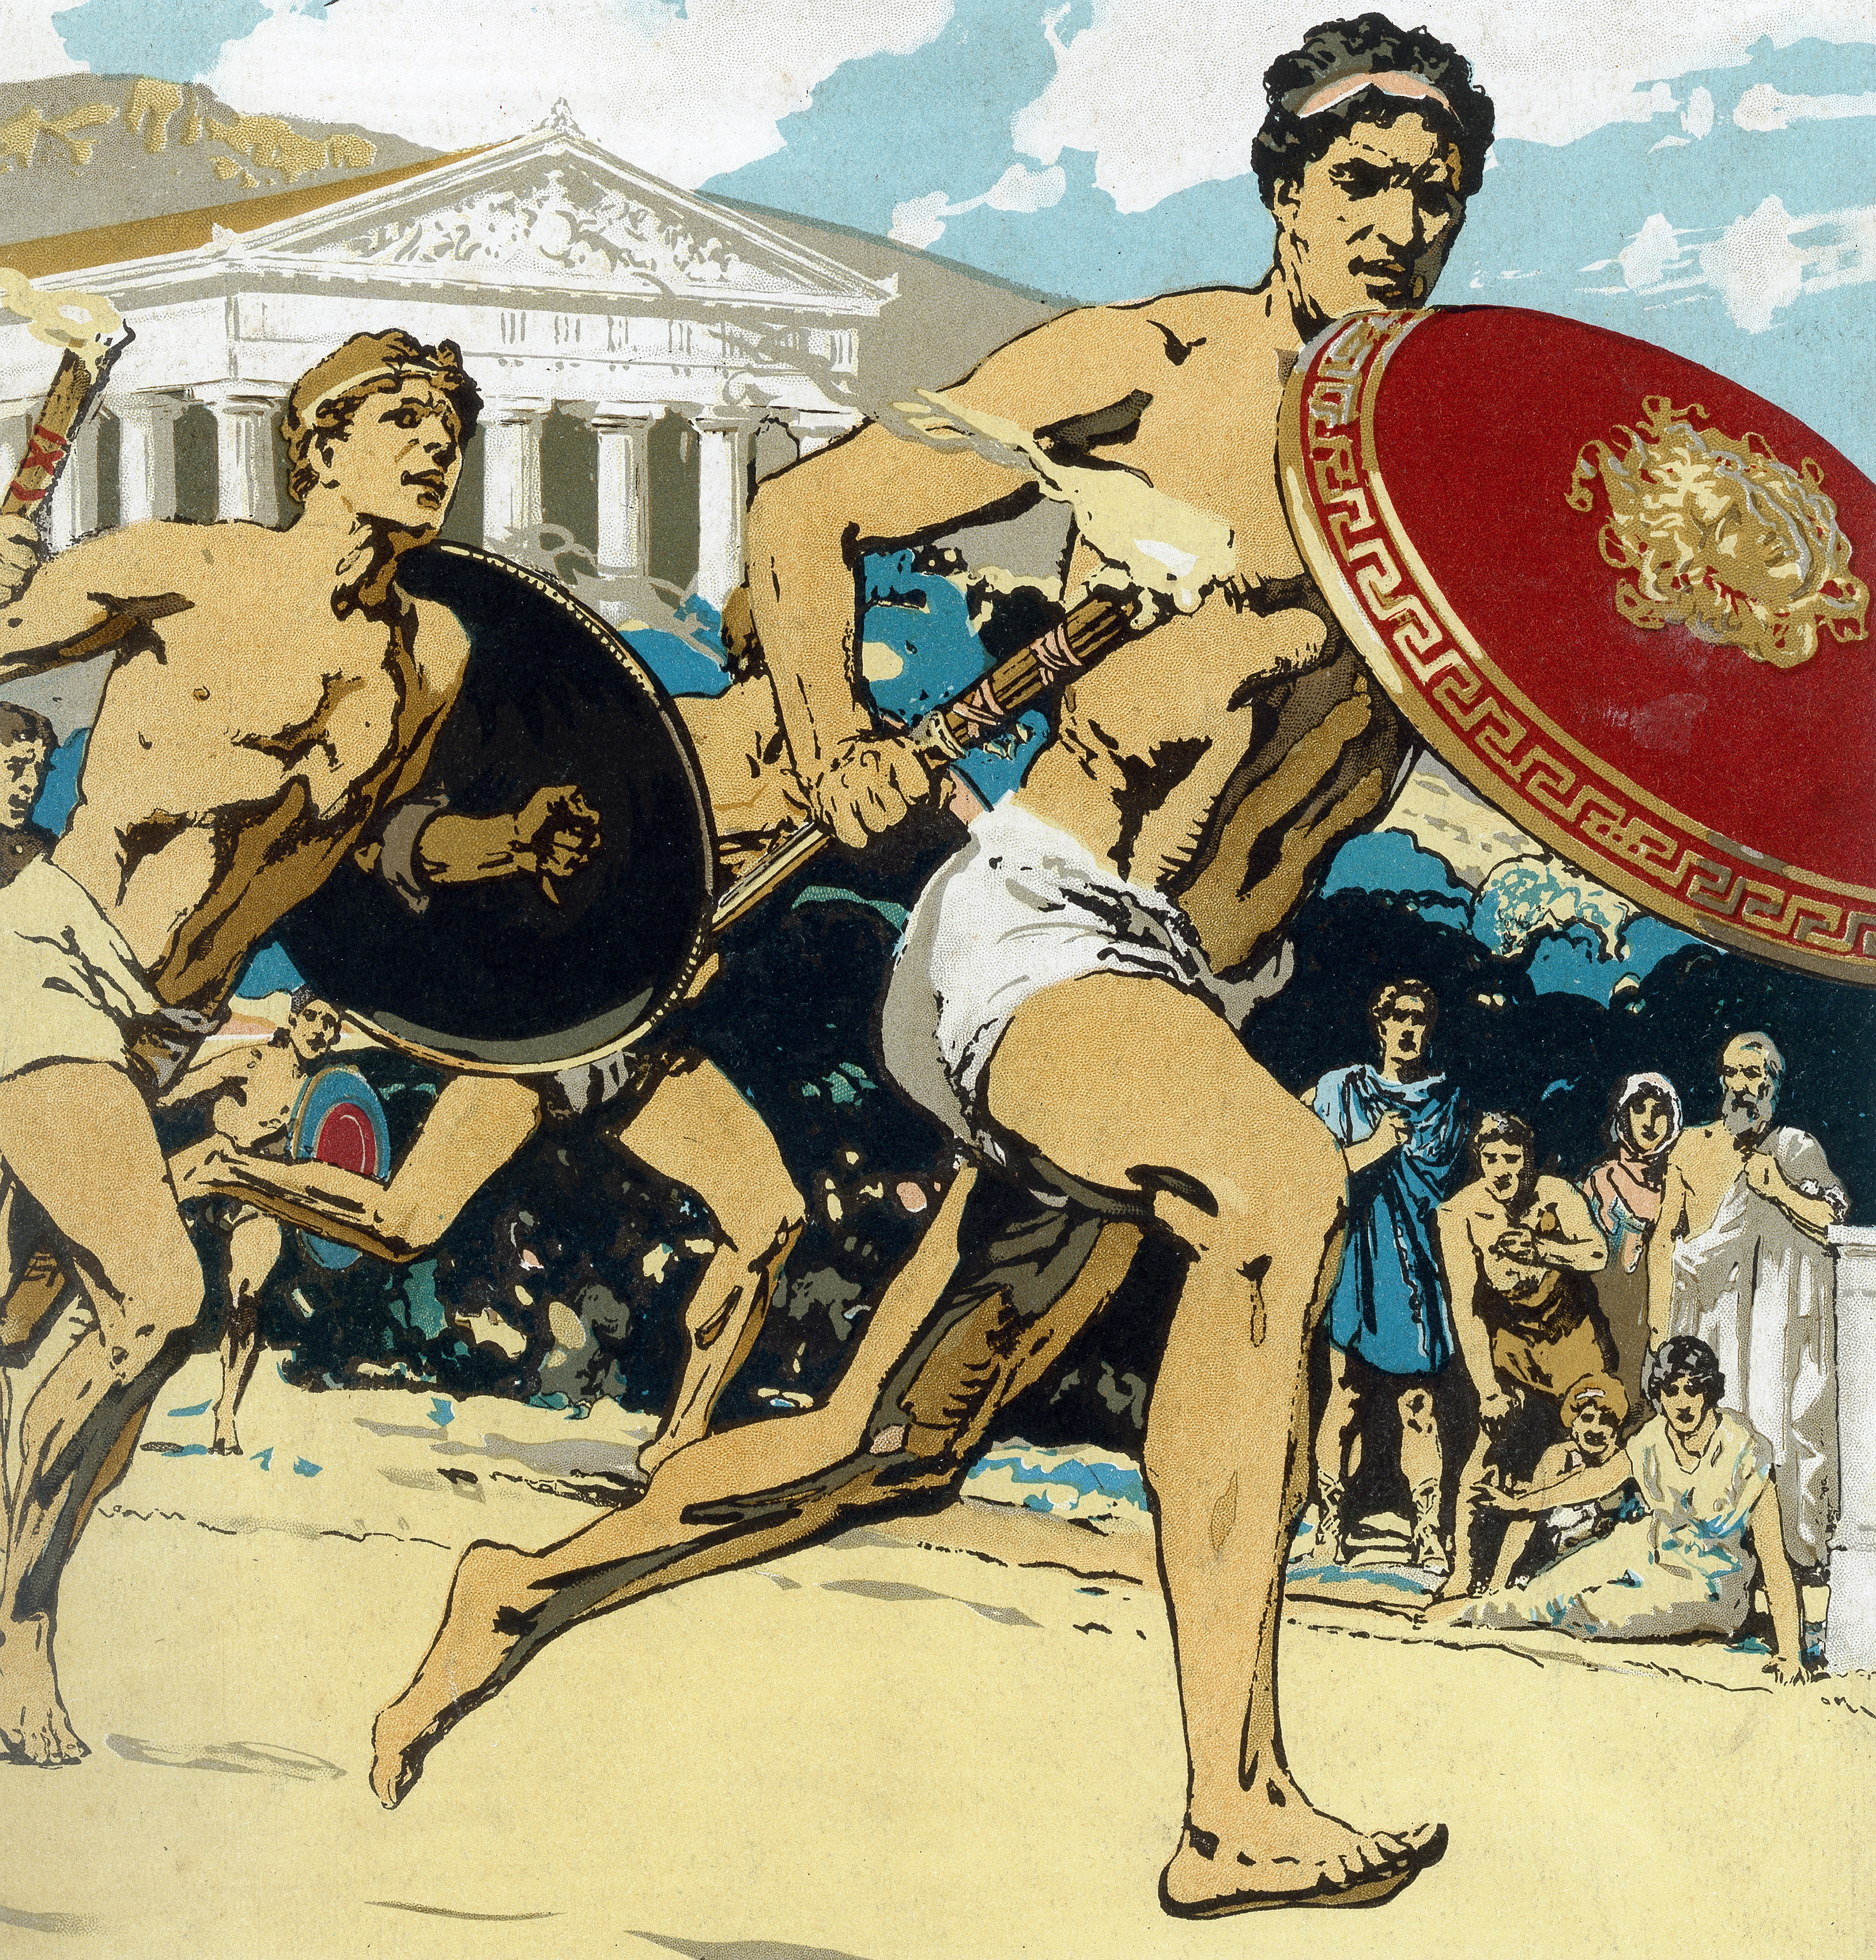 5 Myths About the Ancient Olympics - HISTORY